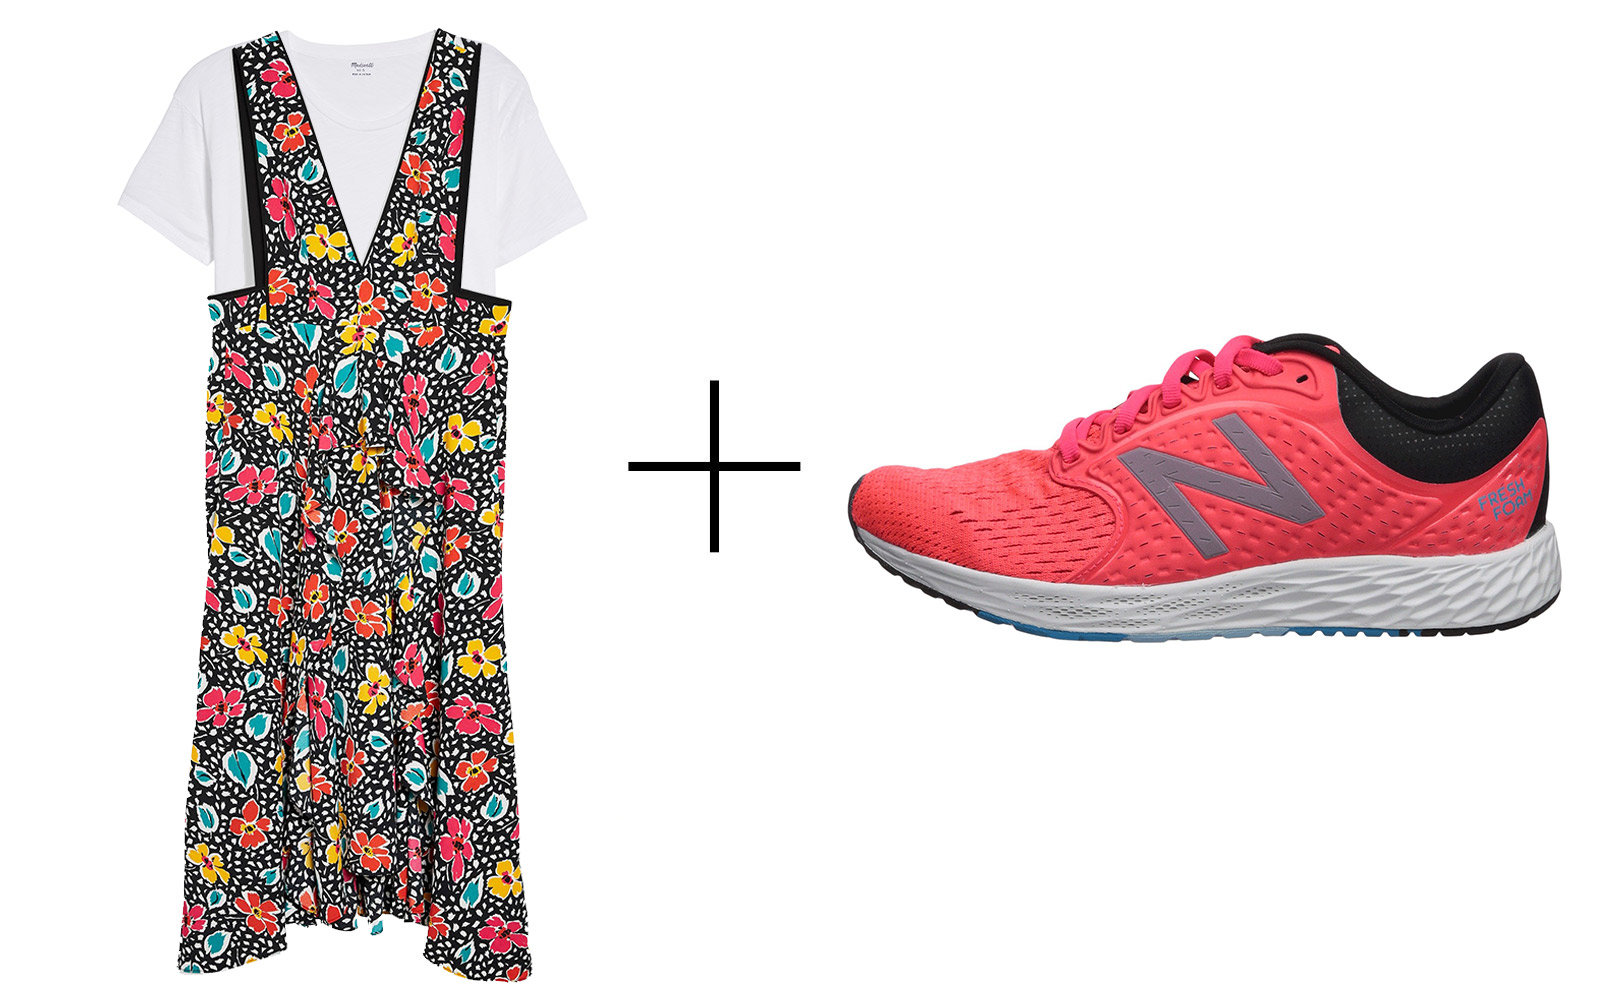 Topshop Pinafore Midi Dress With Madewell 'Whisper White' T-shirt & New Balance 'Fresh Foam Zante v4' Sneakers